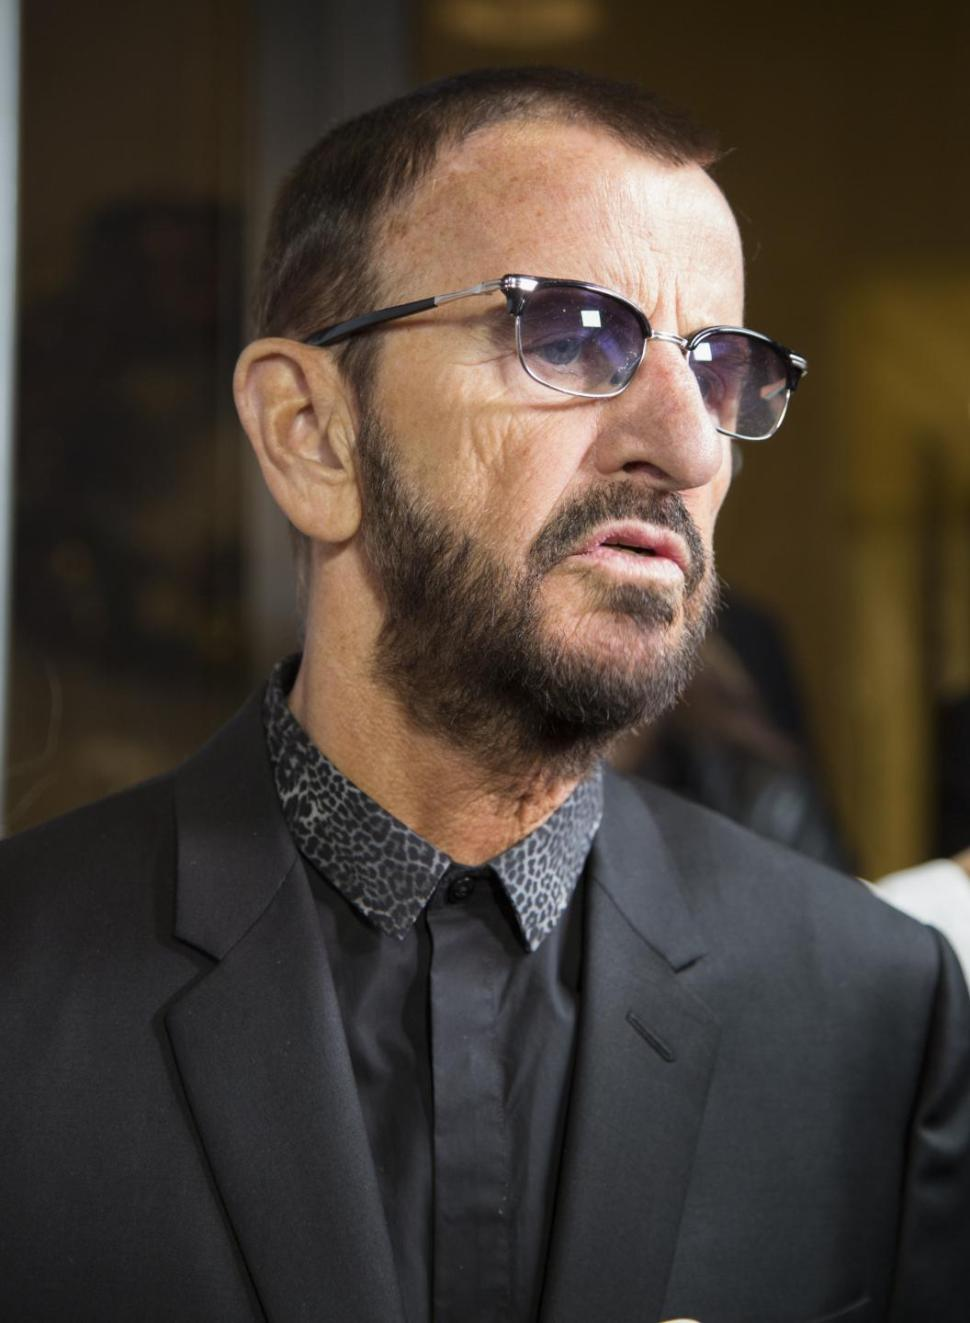 Welcome to Linda Ikeji's Blog: The Beatle's Ringo Starr ...